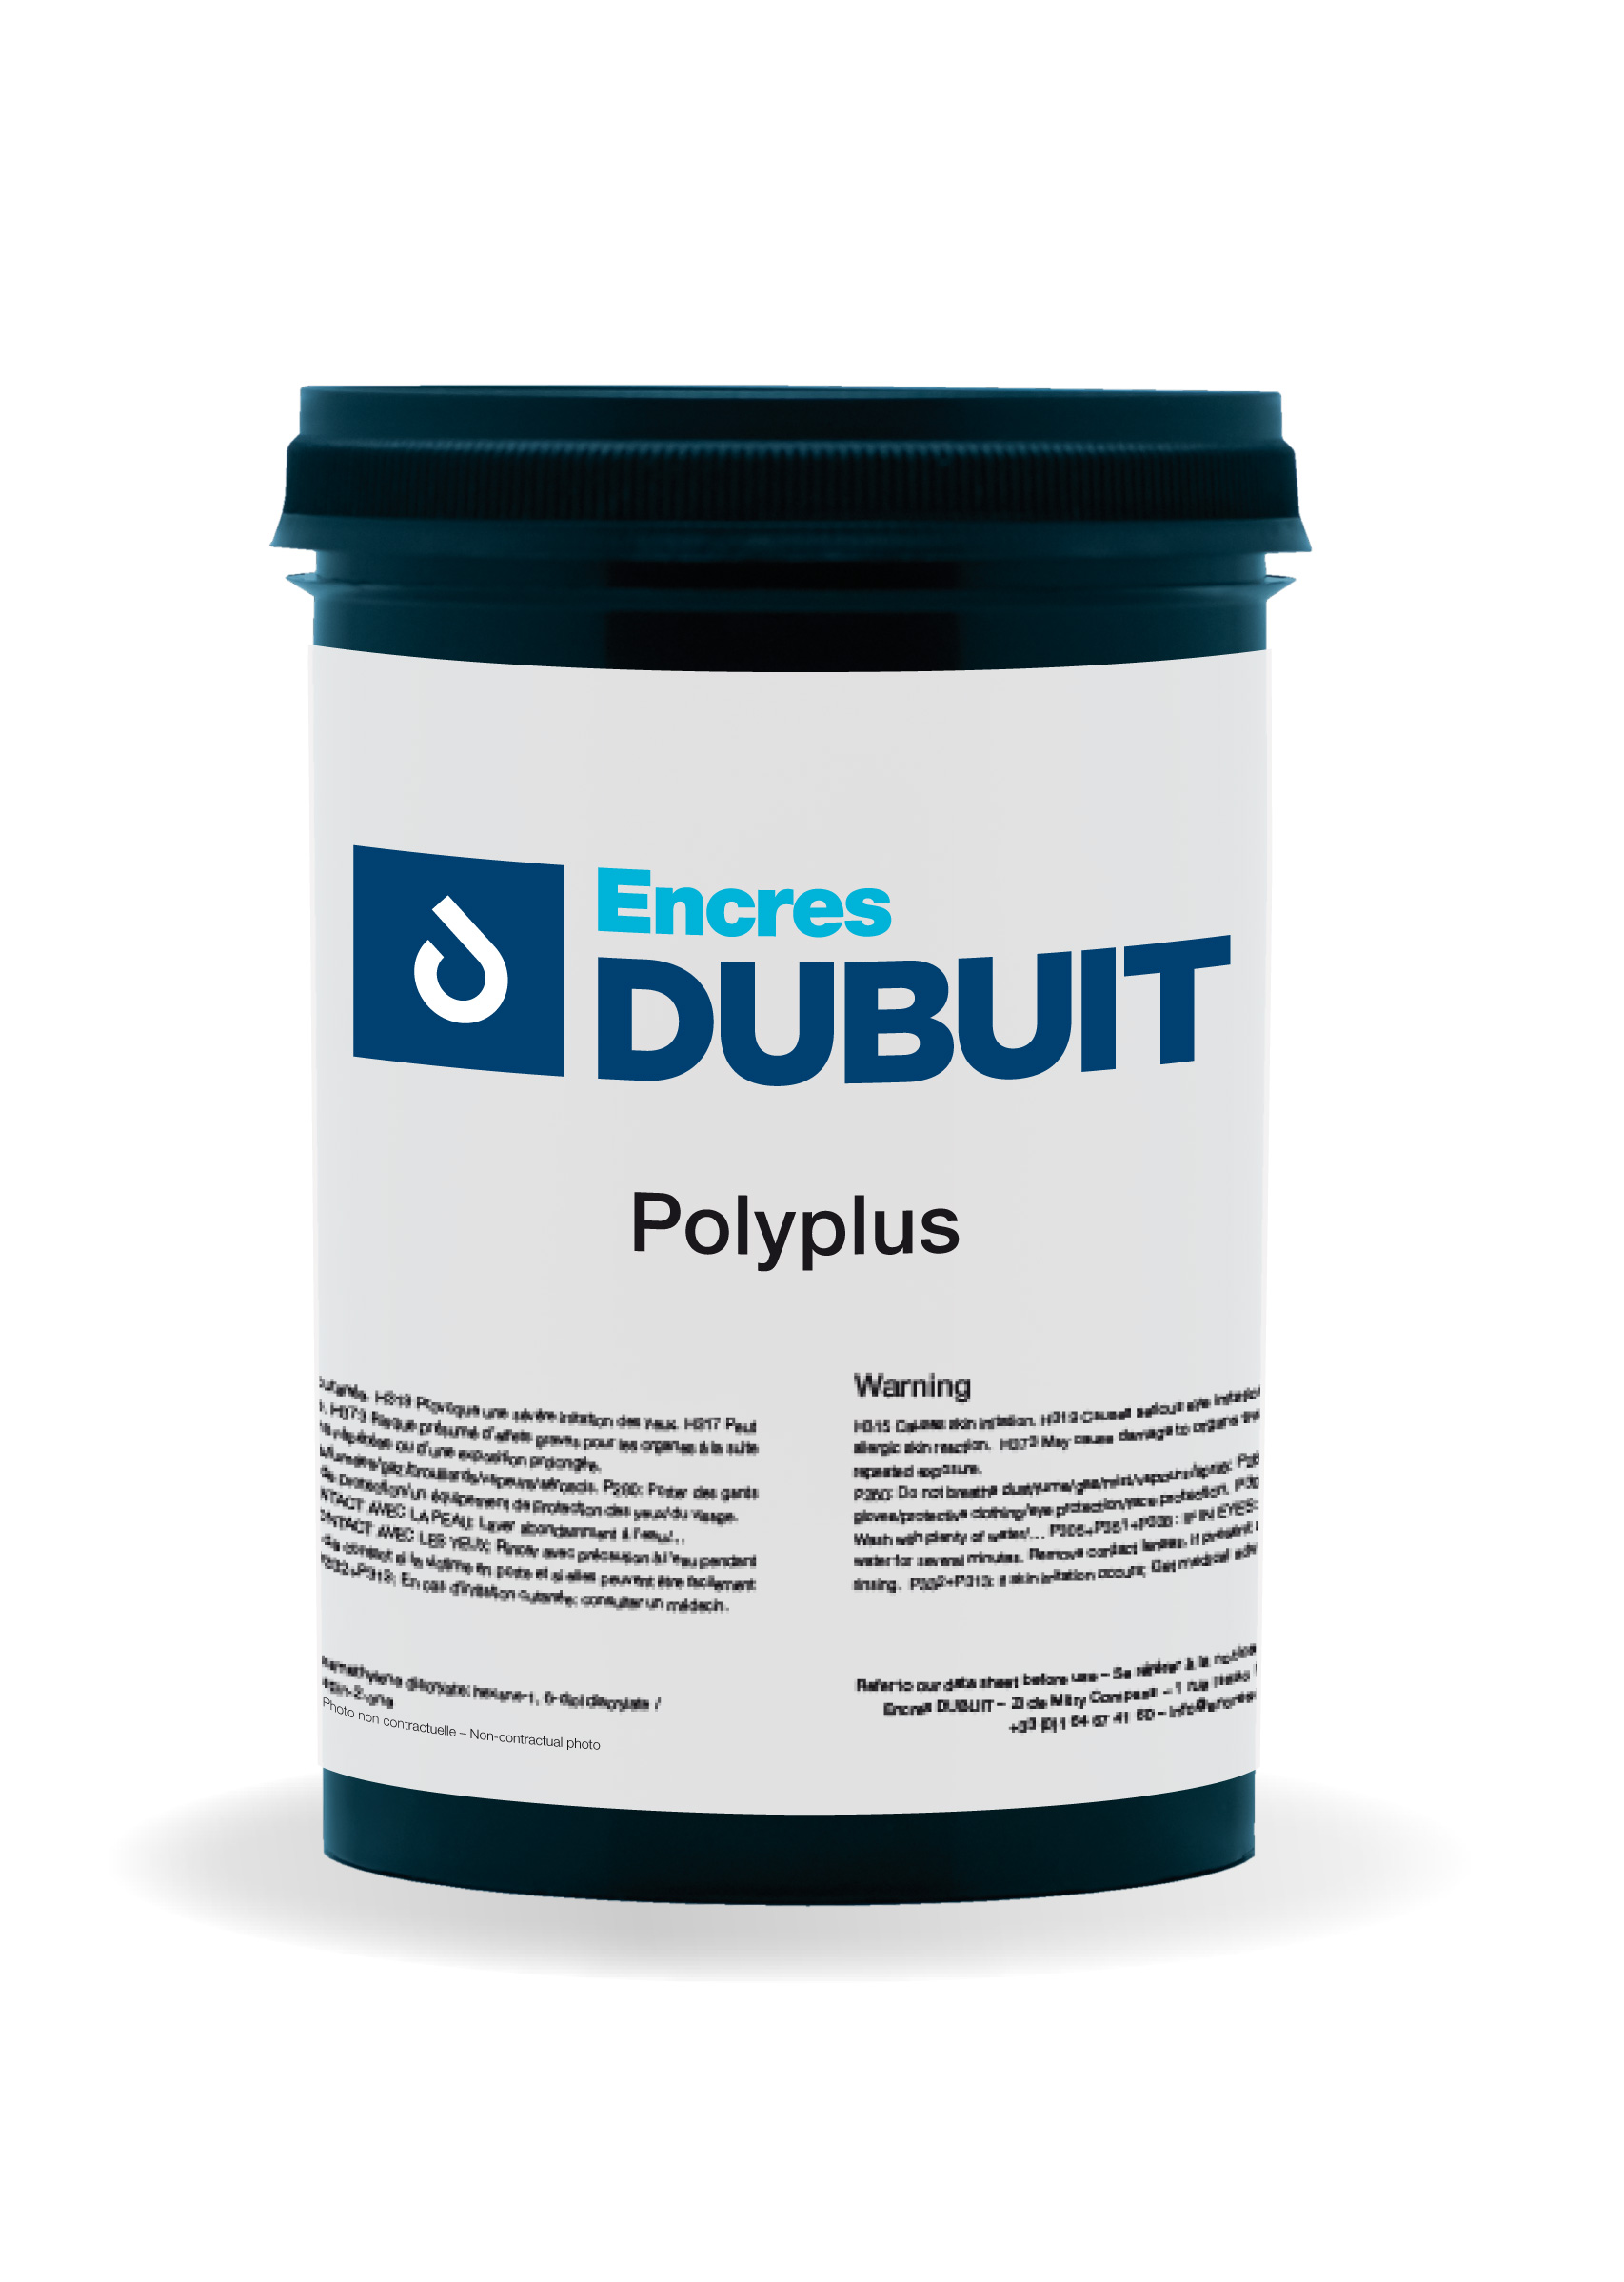 Serie Polyplus Encres DUBUIT UV Screen Printing Ink